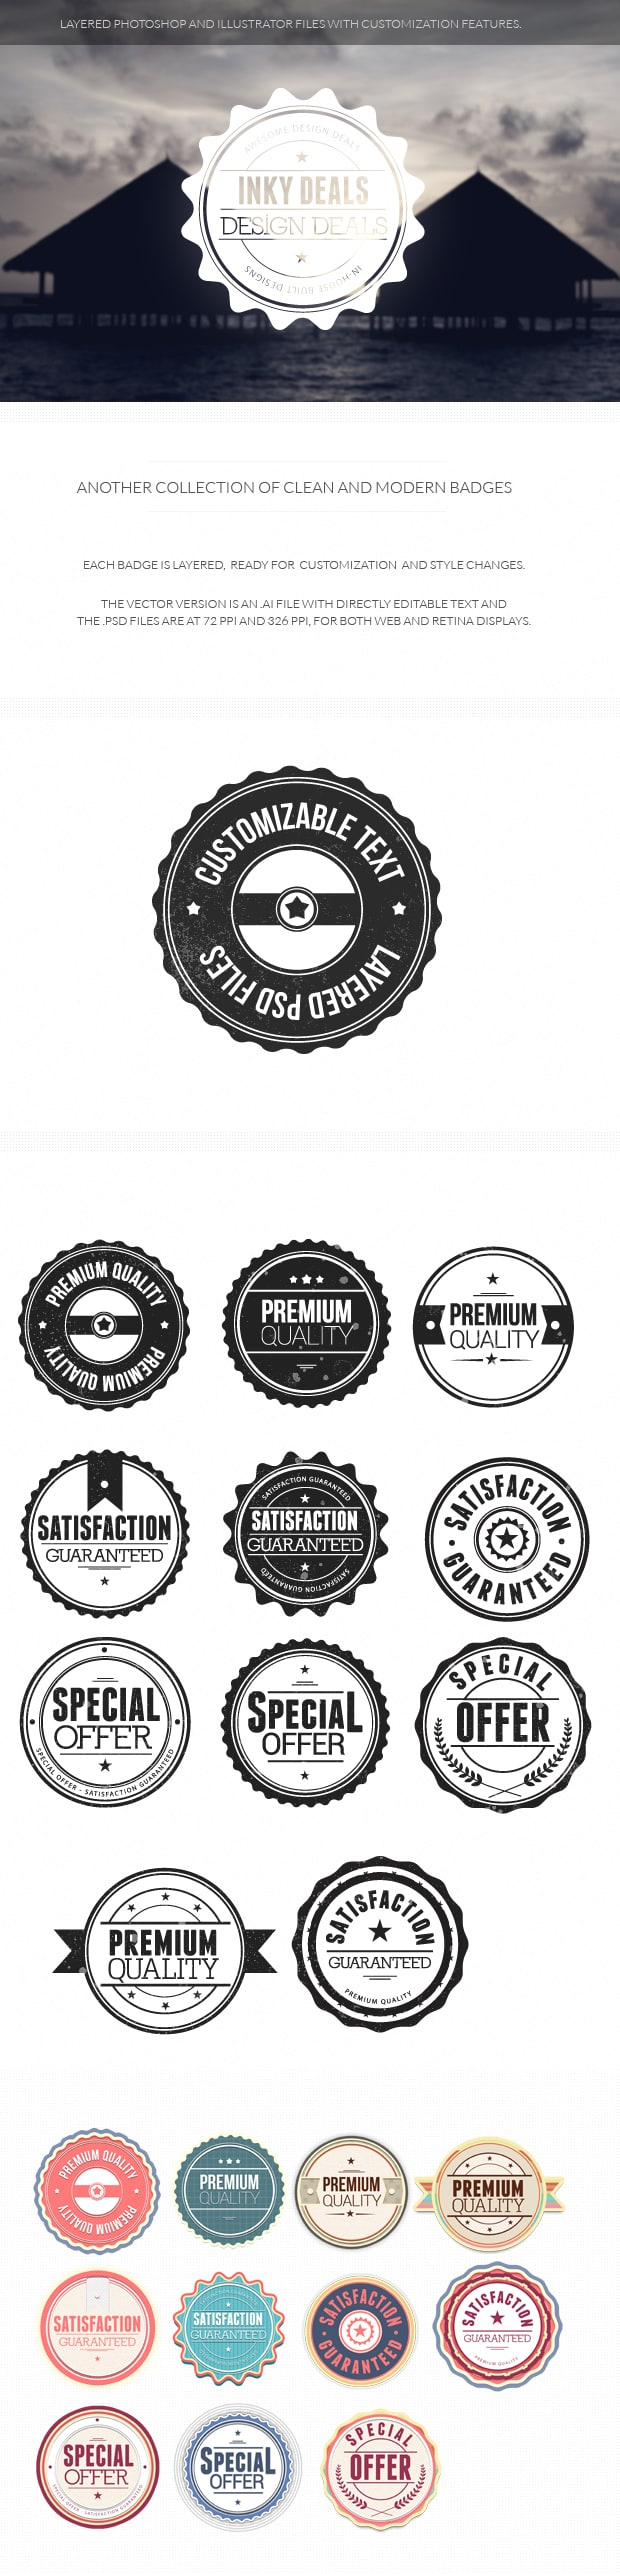 Clean and Modern Badges set 2 clean and modern 2